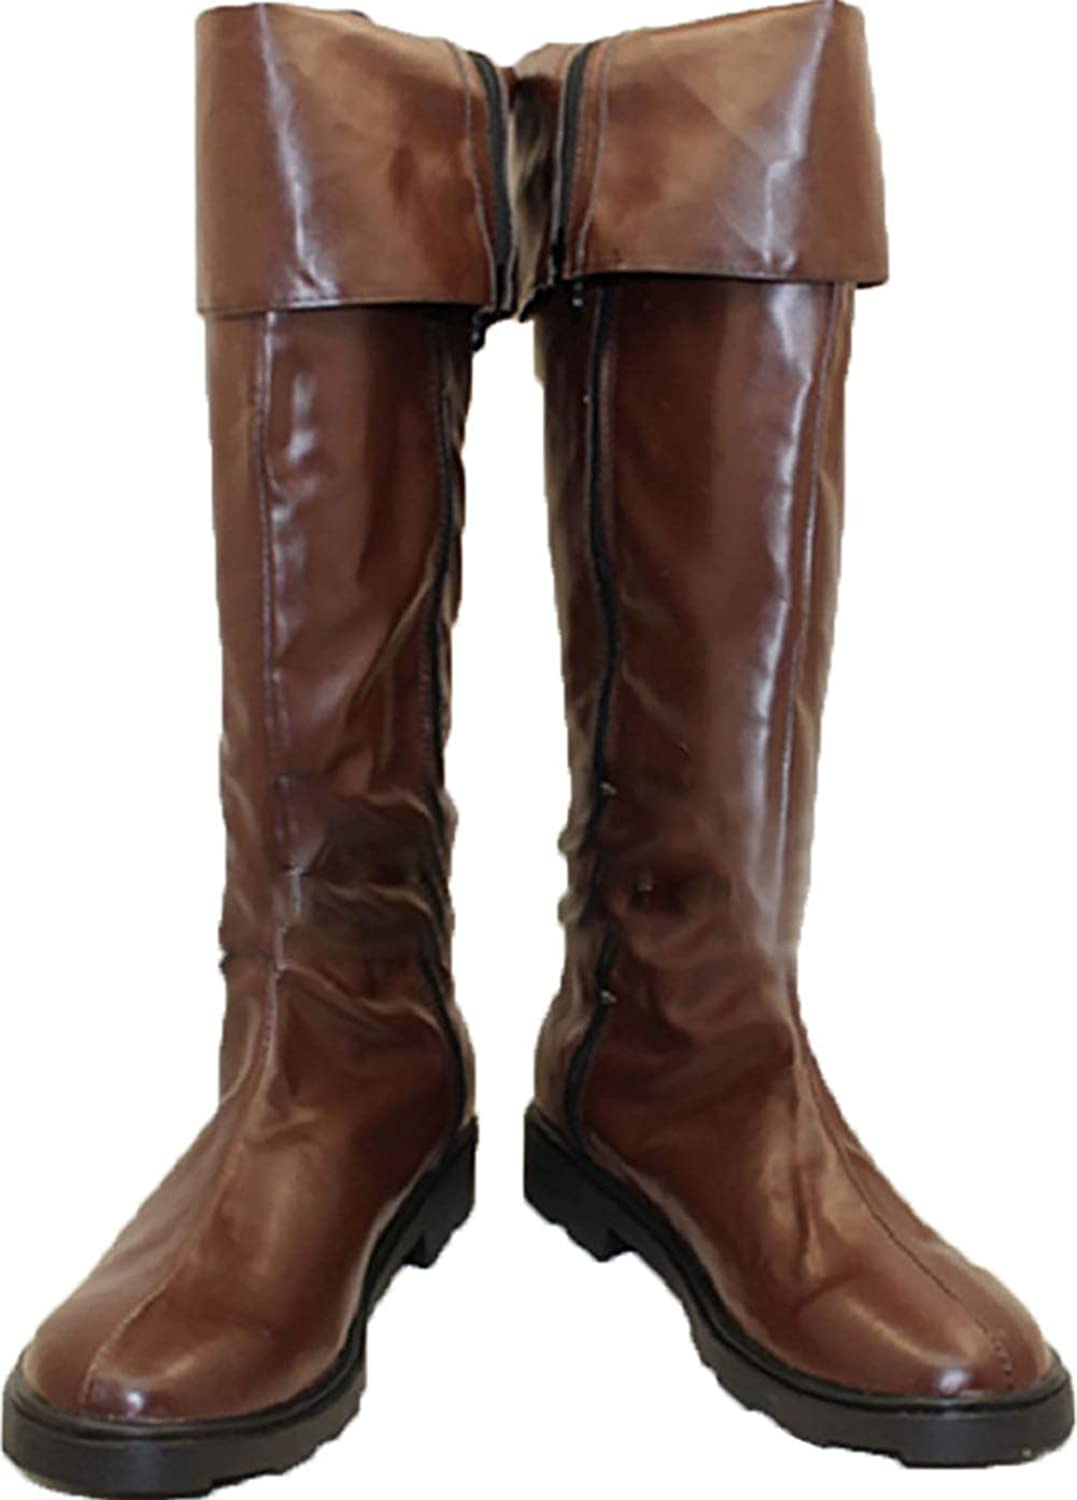 Cosplay Boots shoes for Hellsing Alucard Vampire Hunter